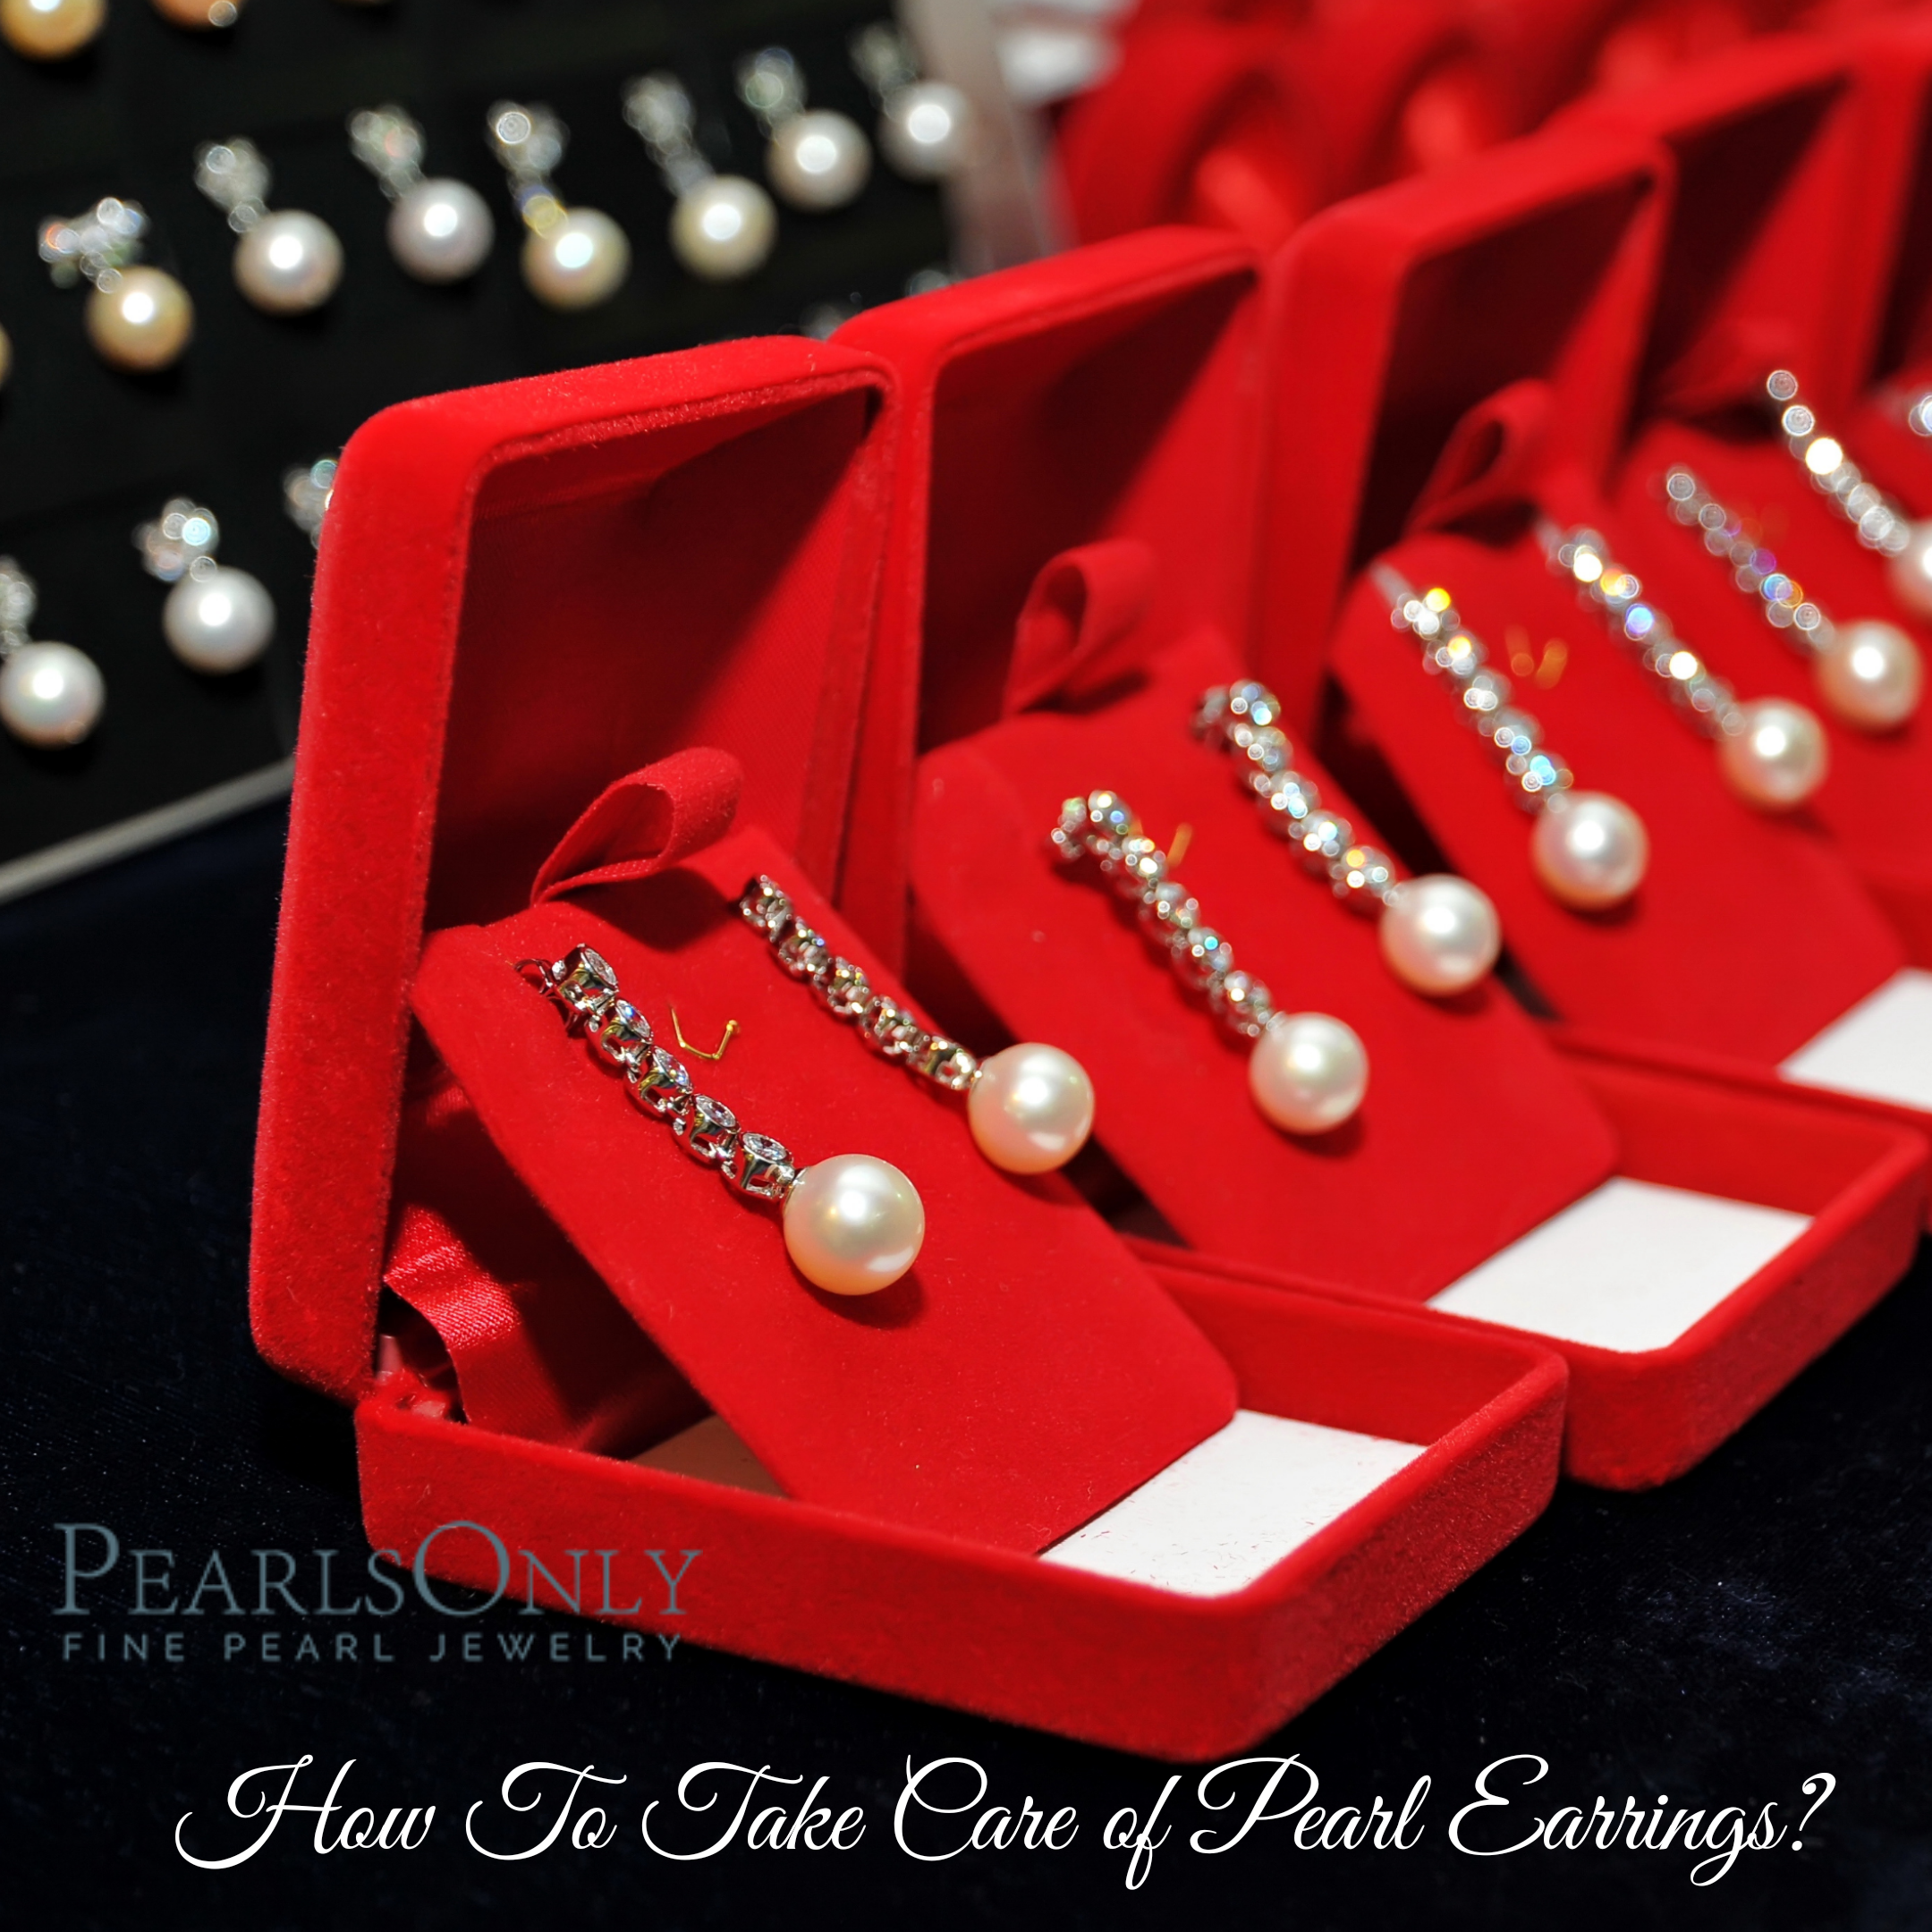 ho to take care of your pearl earrings